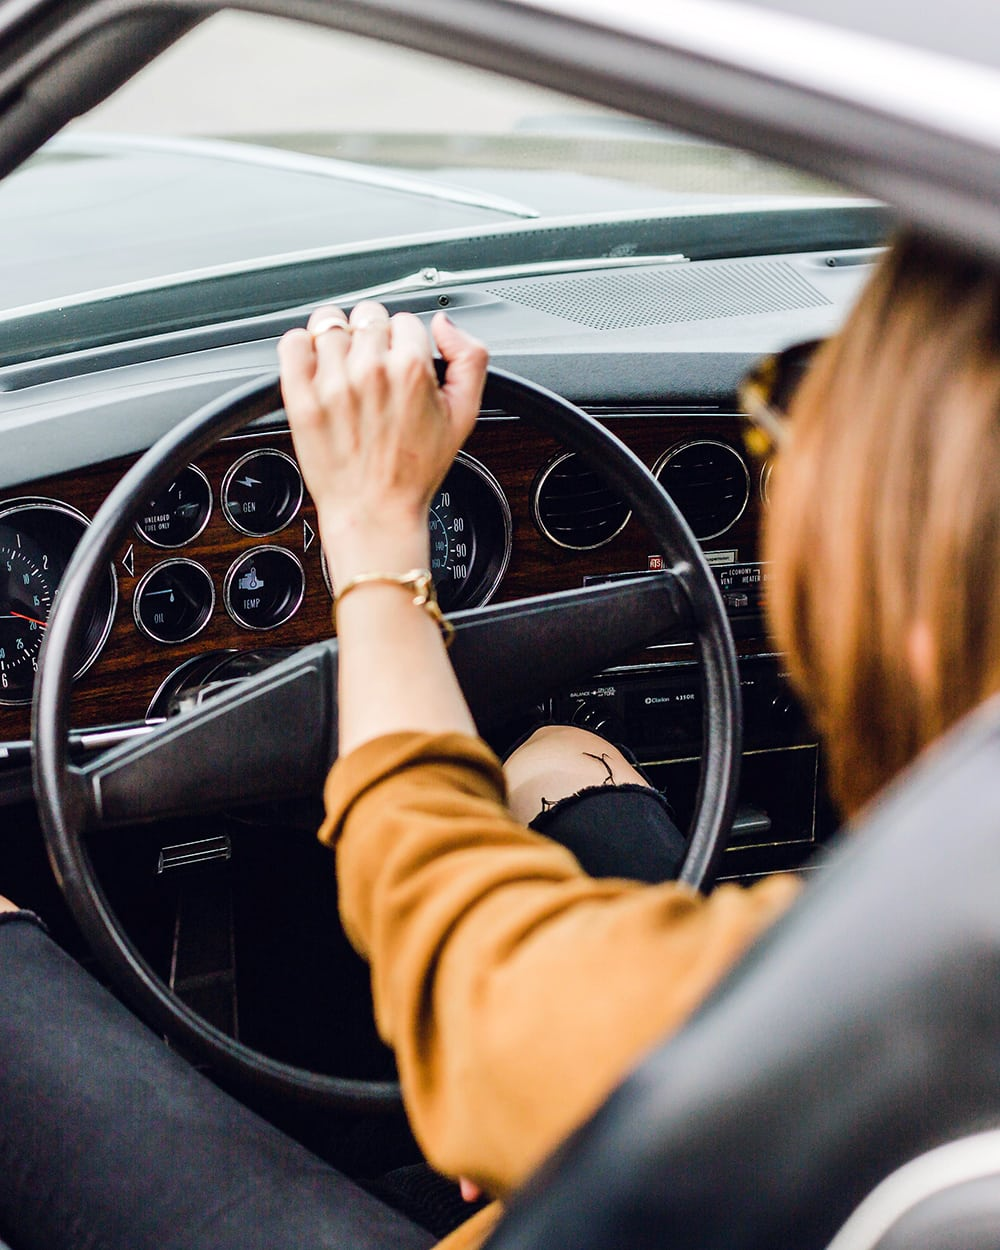 Woman driving in a vintage car! Need money now? Make extra money fast with these creative ways to make money, the easy way. The best ideas to make money. Learn how to make 100 dollars a day!